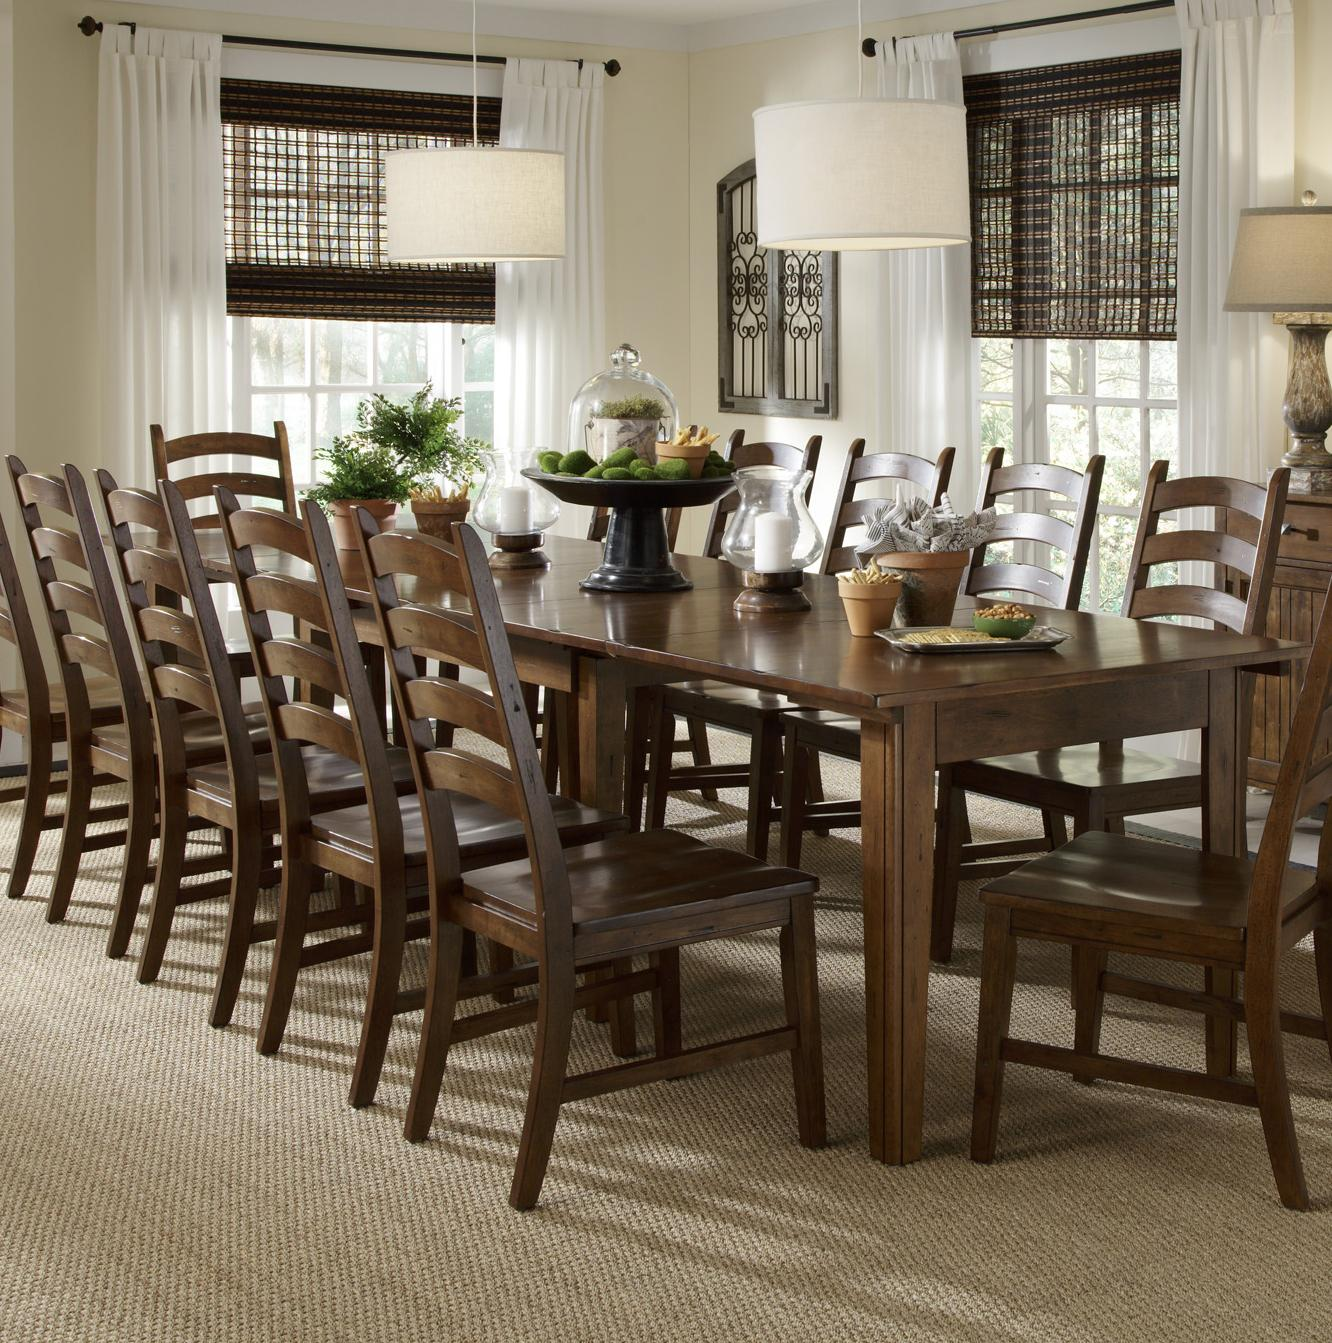 Solid Wood Leg Table With SelfStoring Leaves By AAmerica Wolf - Dining table with 3 leaves